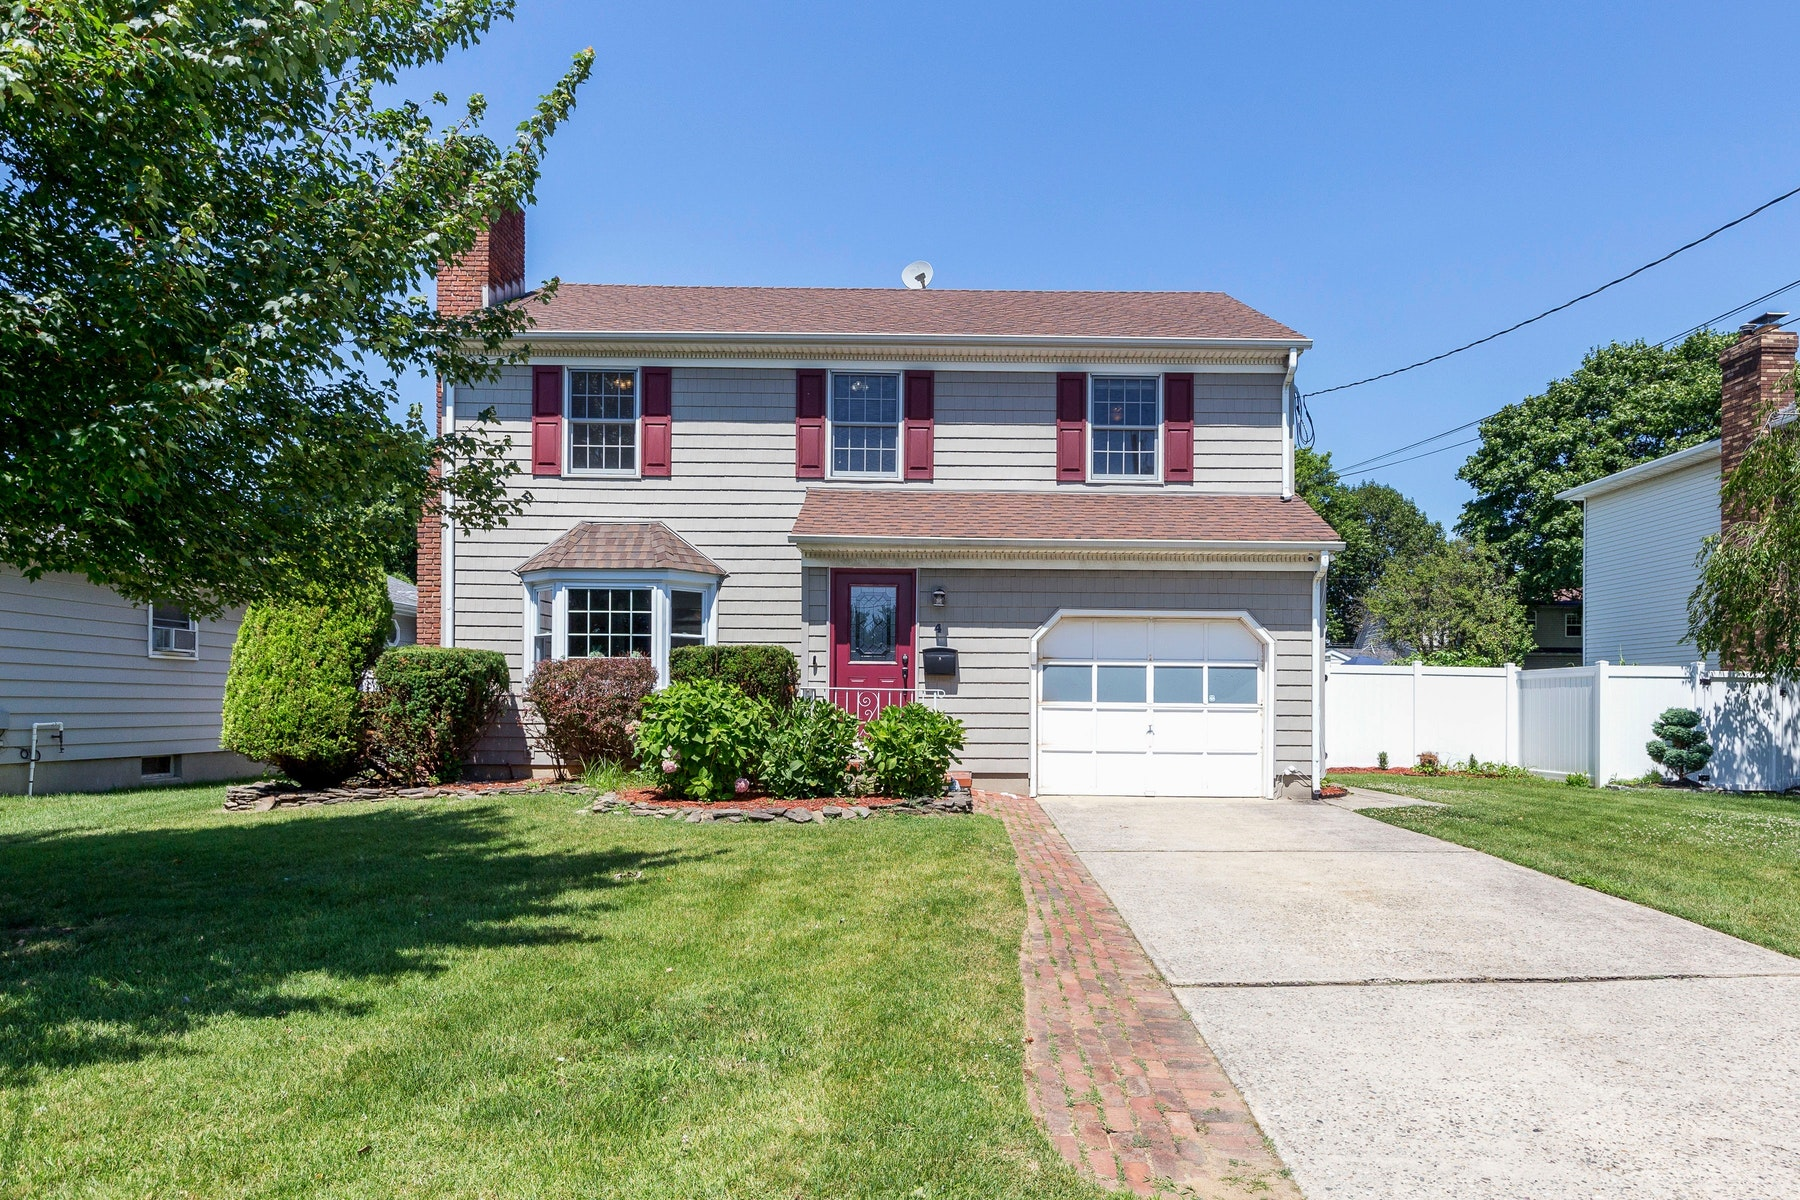 Single Family Homes for Sale at Colonial Style with Modern Amenities 4 Charles Street Sayreville, New Jersey 08879 United States